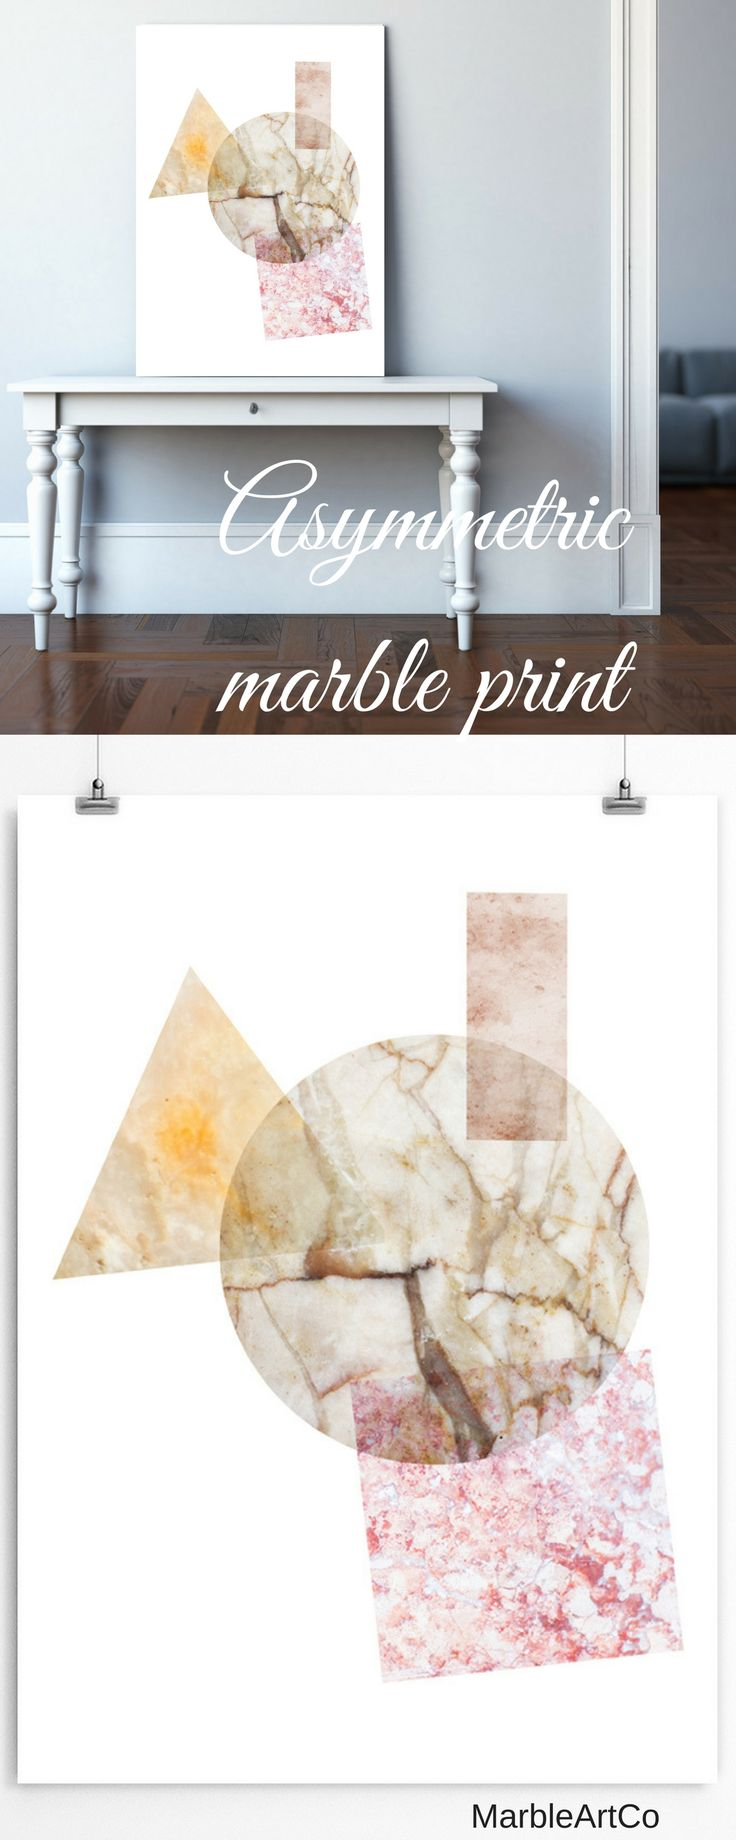 The urban abstract art print created using a beautiful marble textures will be loved by all minimalism and Scandinavian decor fans. Universal decor for decorating your living room or office. Check out on MarbleArtCo | Large Contemporary Art Prints, Framed Abstract Wall Art, Cool Modern Art, Geometric Art Print, Scandi Print, Apartment Warming Gifts